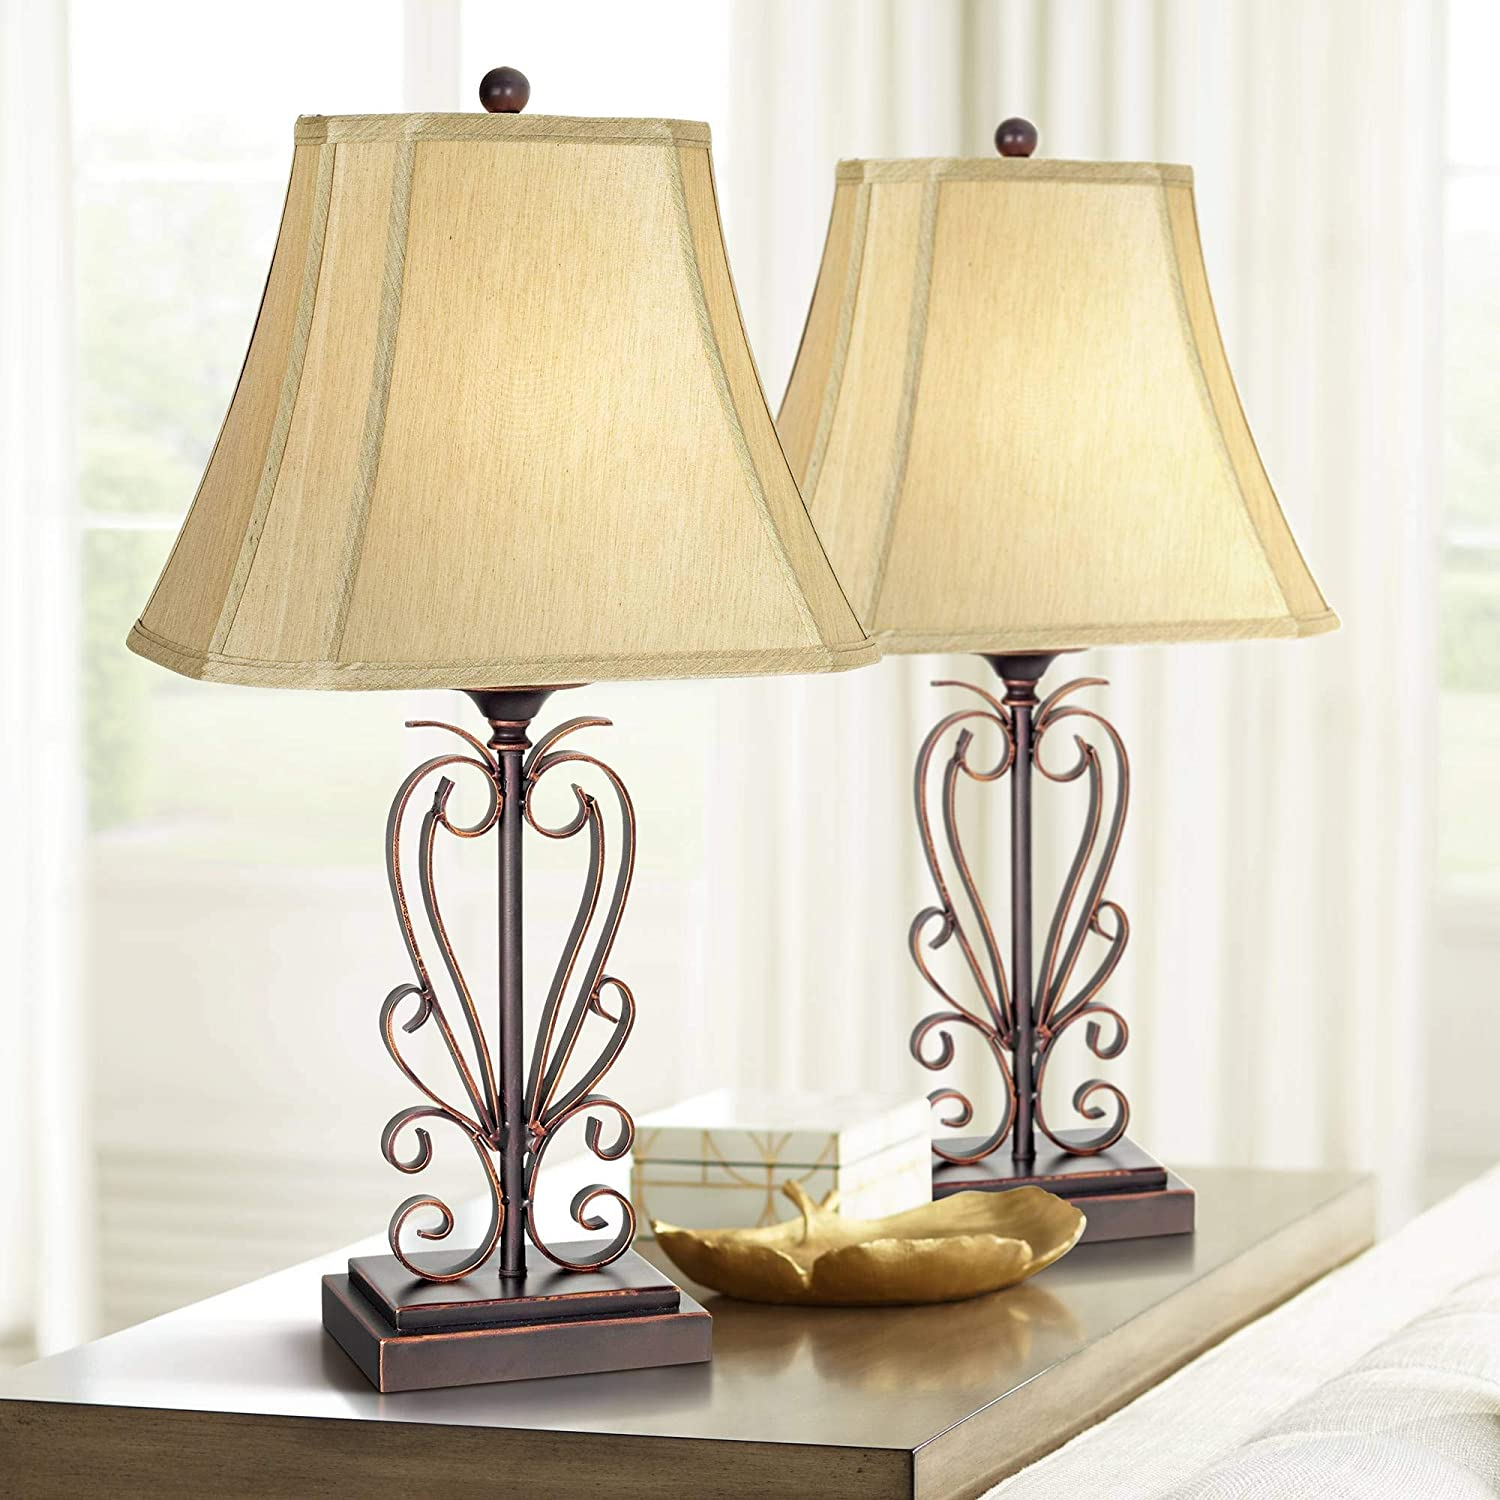 OFFer Traditional Table Lamps Set of 2 Scrollwork Challenge the lowest price Bronze Cop Open Iron